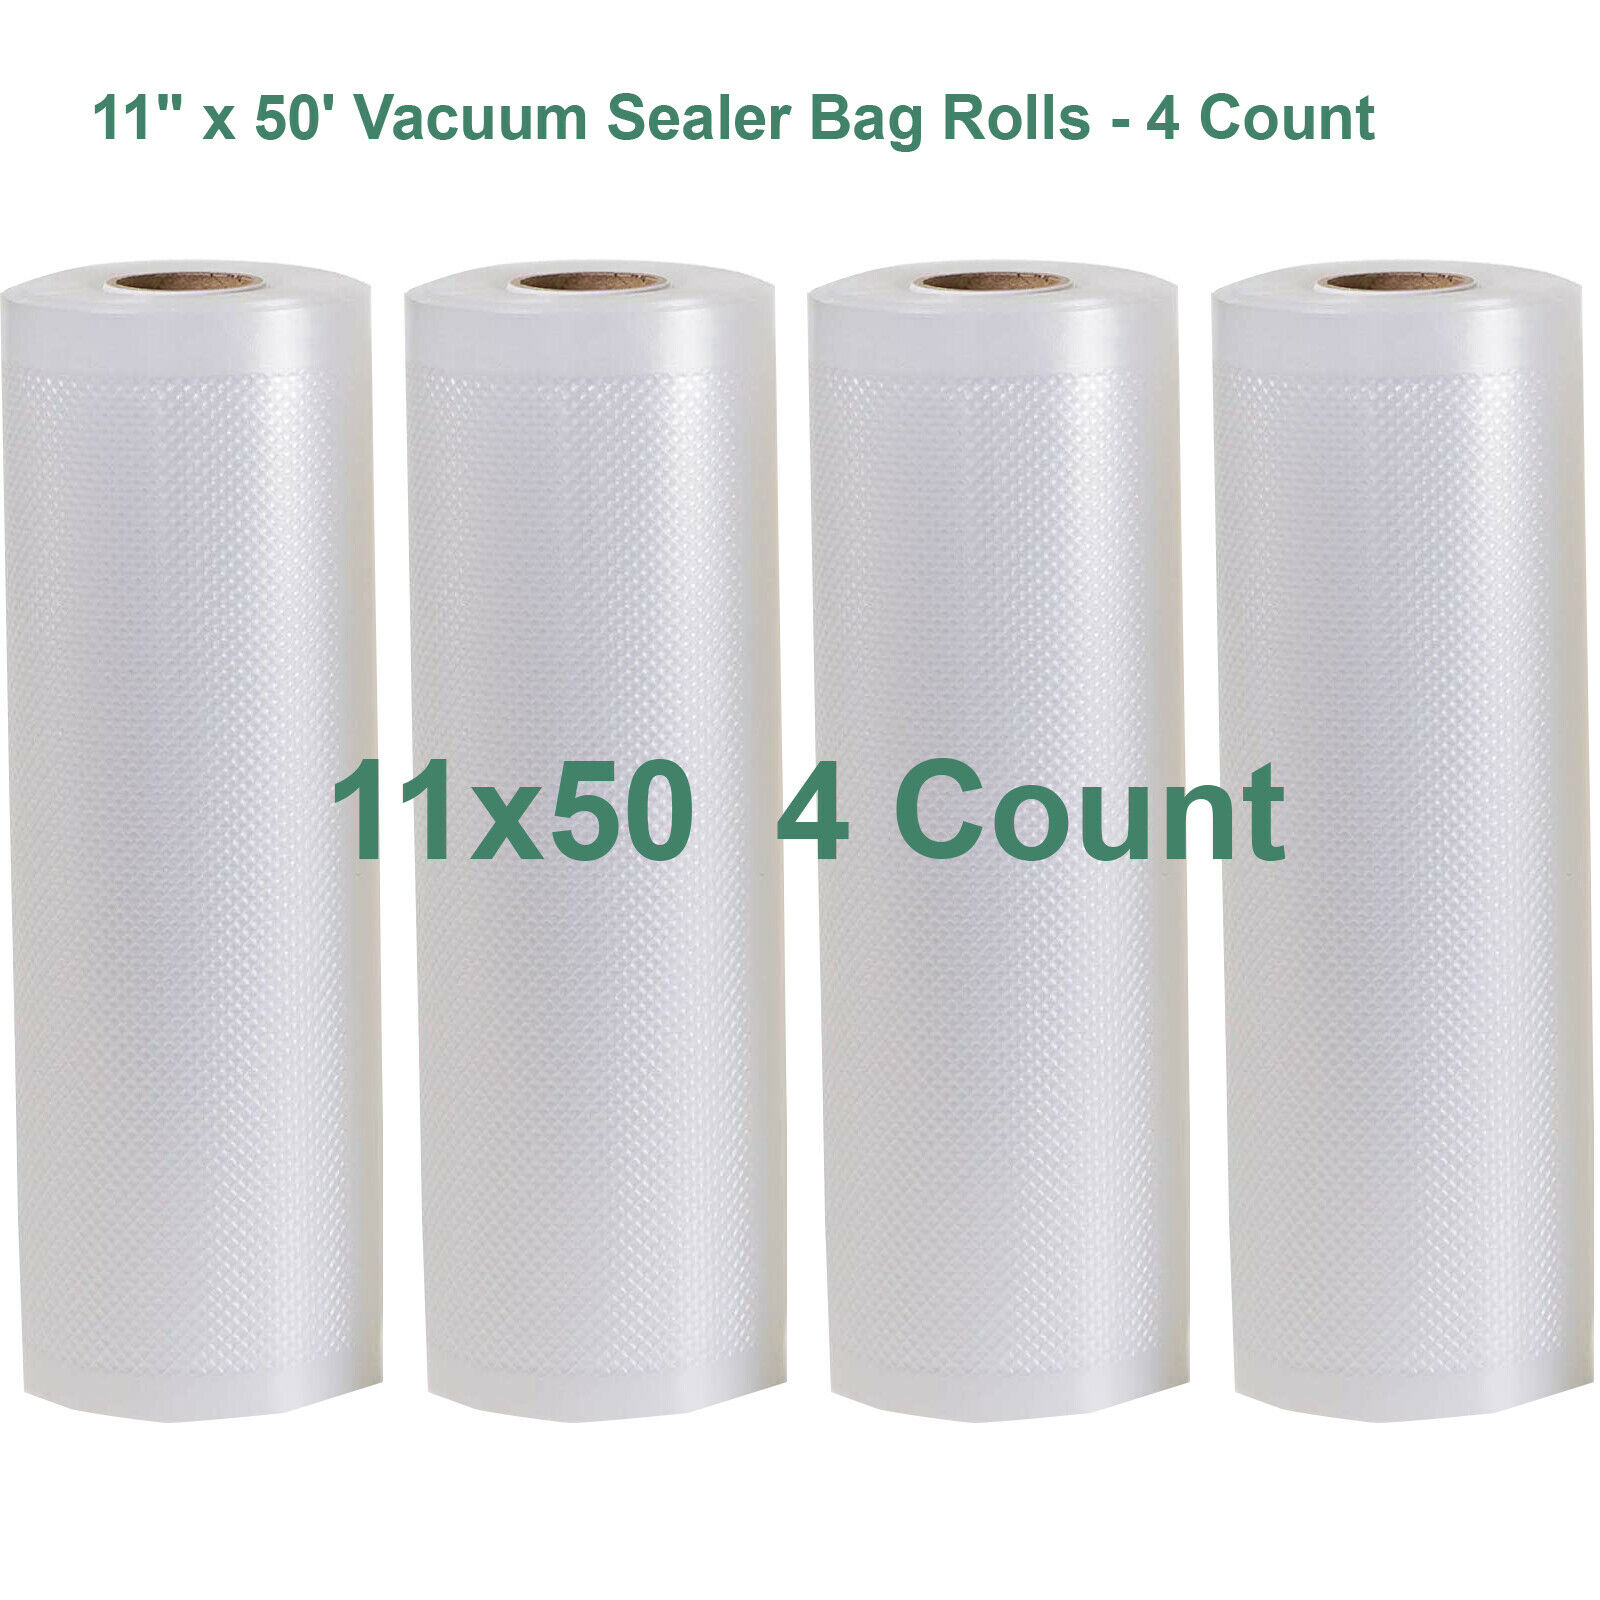 Wes Gamesaver Seal a Meal Vacuum Sealer Bags 8x50 Rolls 2 pack for Food Saver